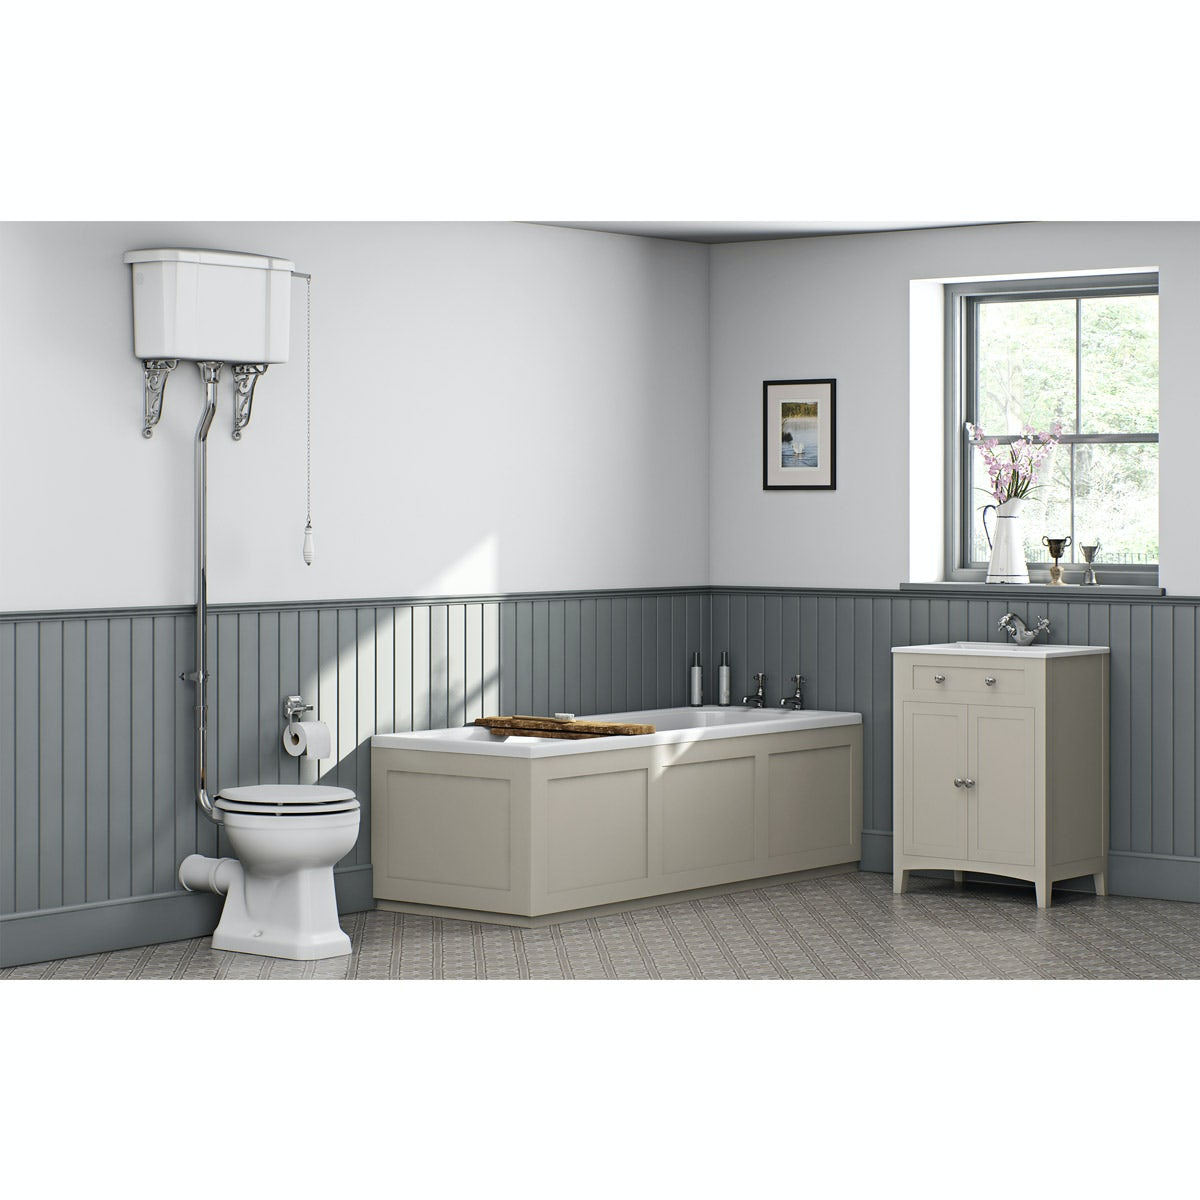 Camberley ivory high level furniture suite with straight bath 1700 x 700mm